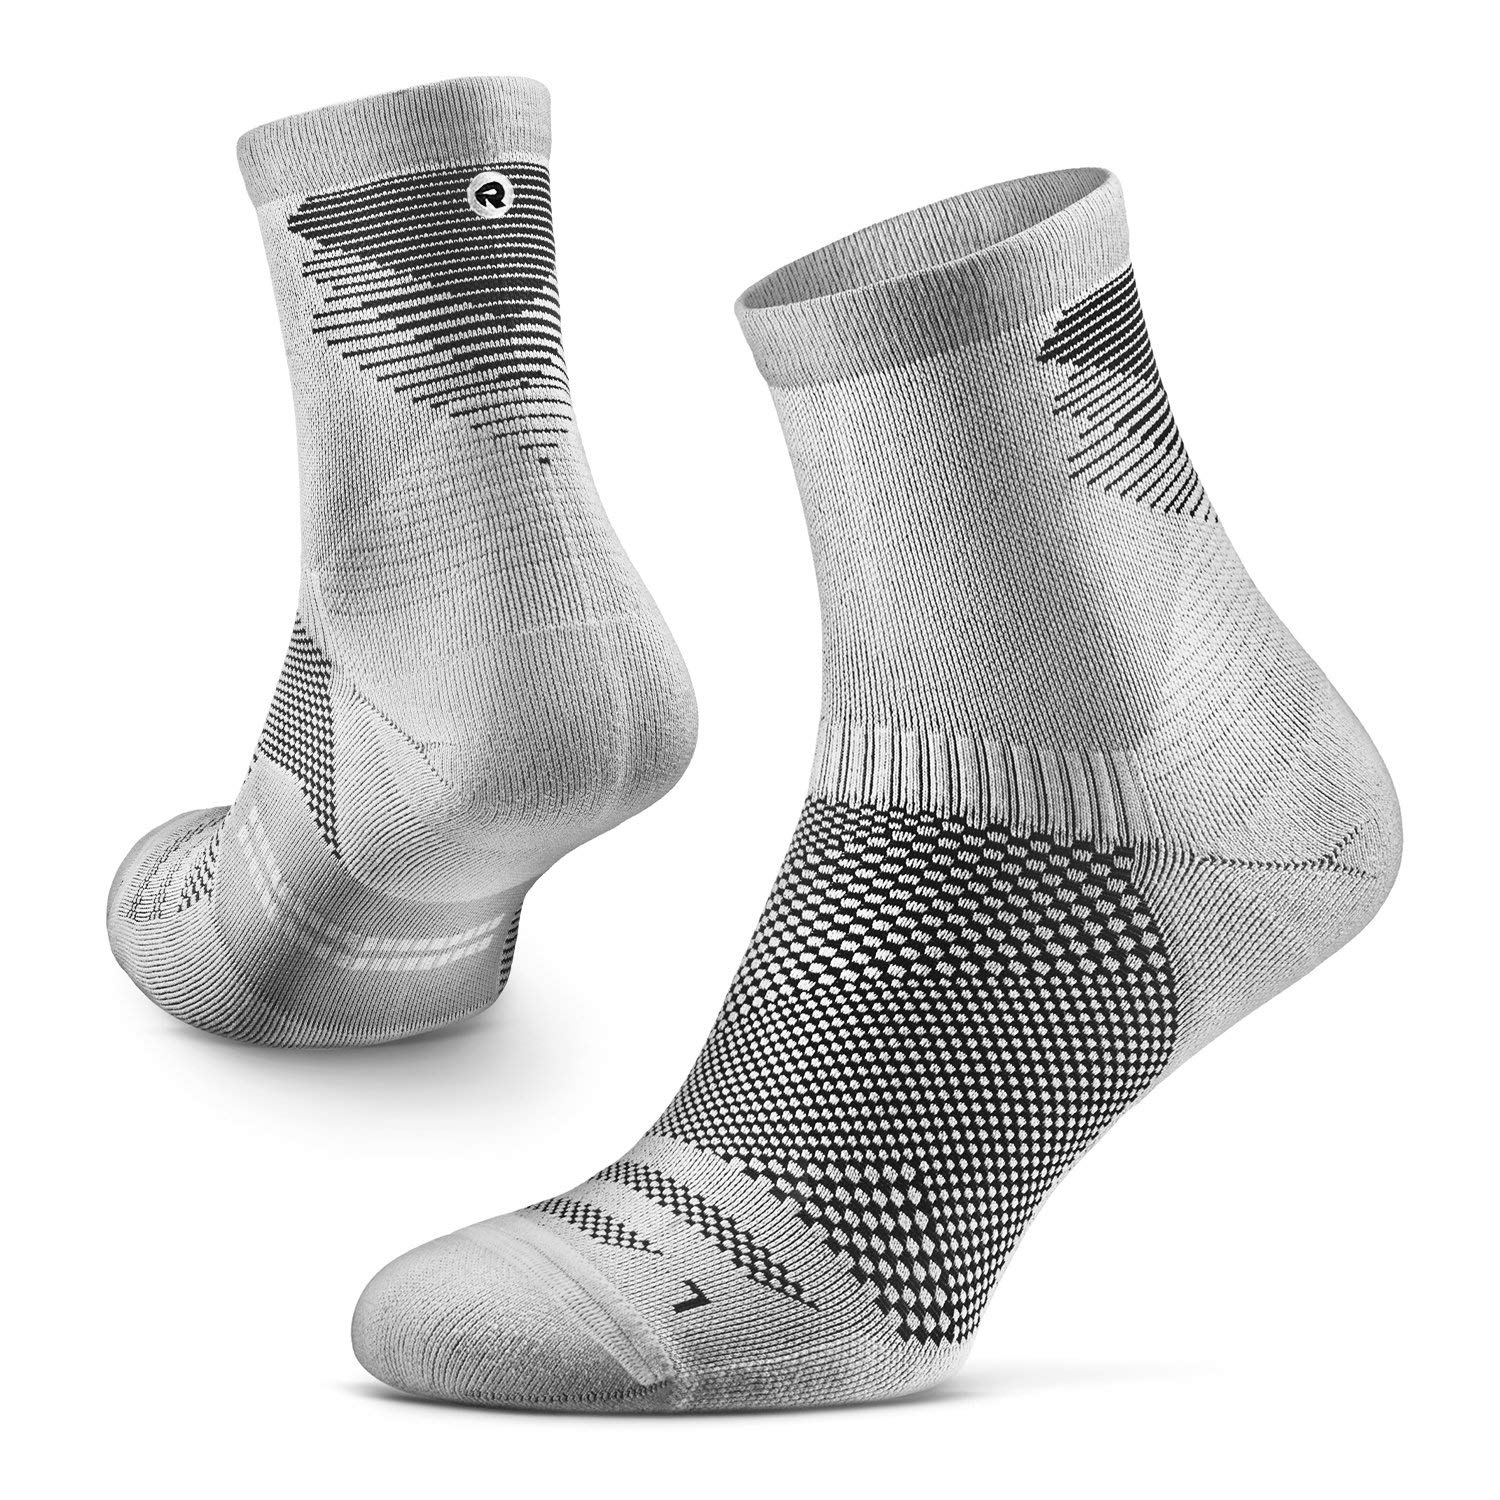 1 Pair Arch Support Anti-Odor Cushion Rockay Razer Trail Running Socks for Men and Women Crew Cut 100/% Recycled